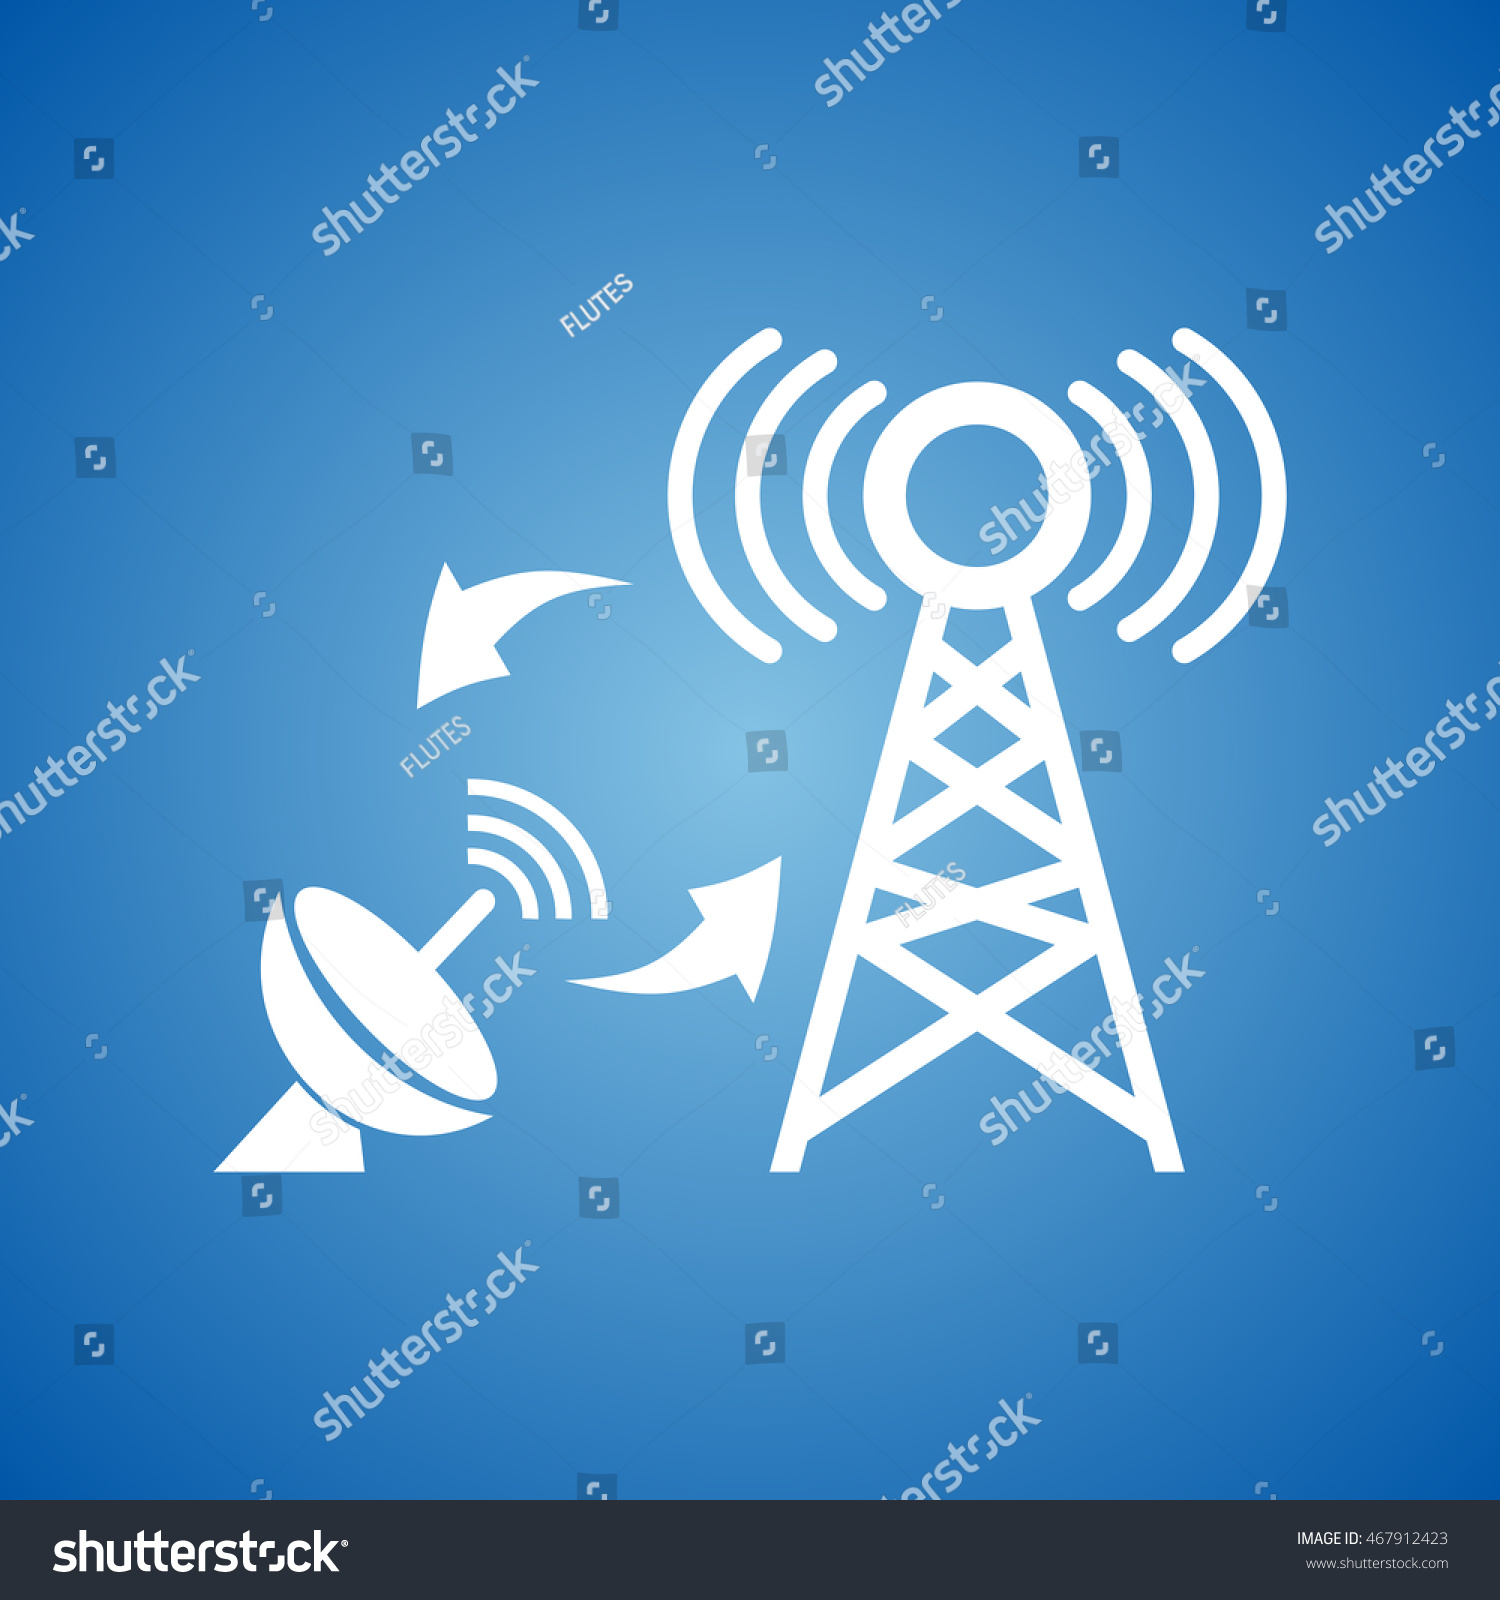 Dish Antenna Network Tower Icon On Stock Vector 467912423 Shutterstock